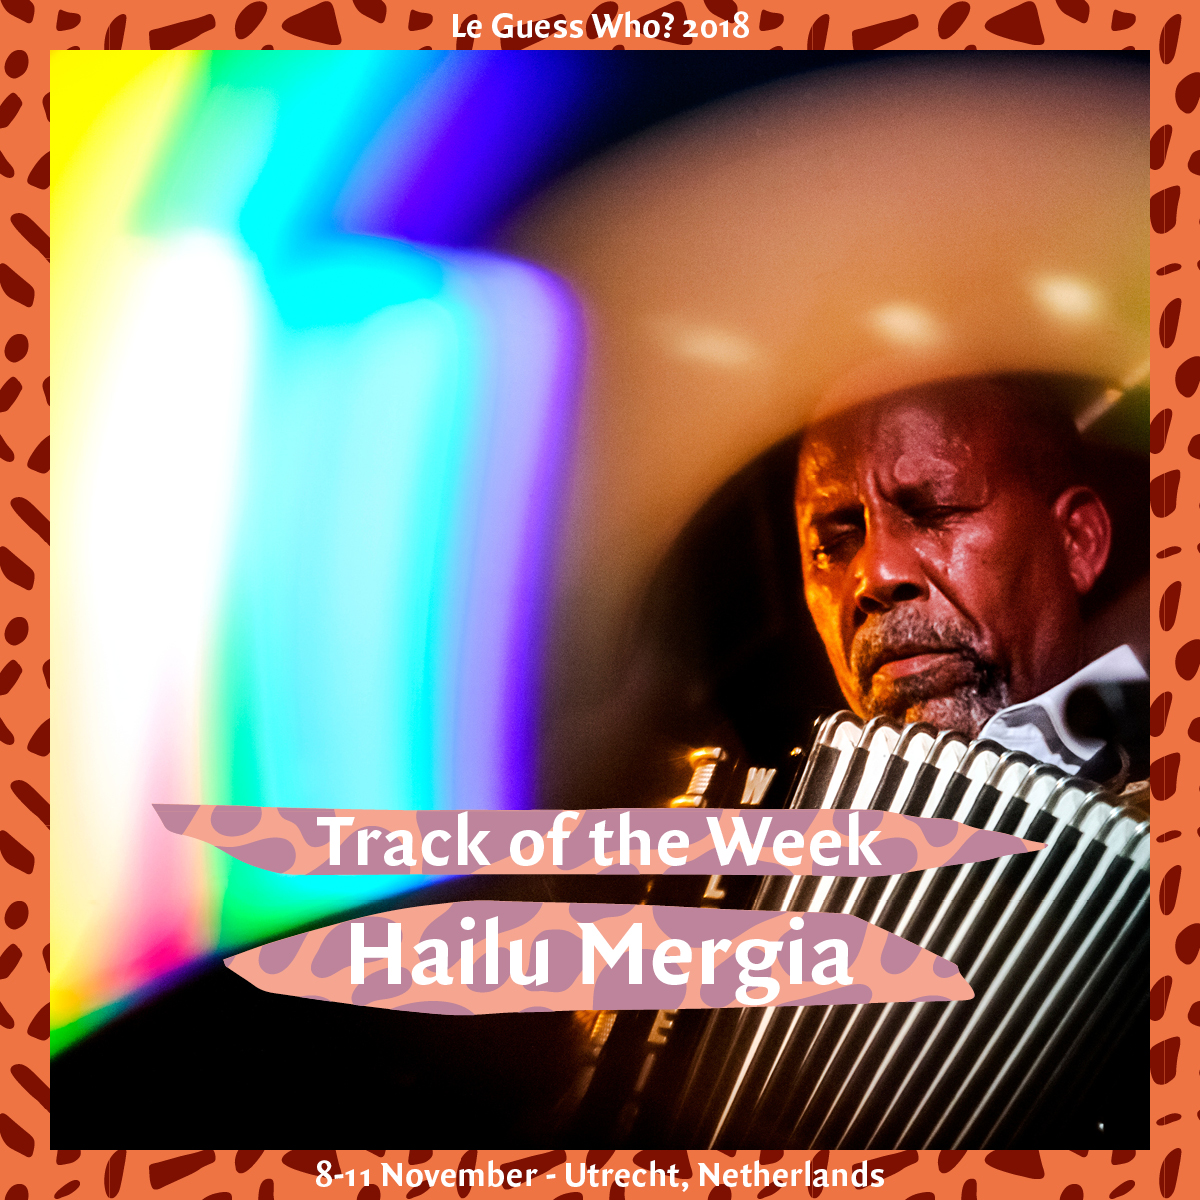 Track of the Week #9: Hailu Mergia - 'Yefikir Engurguro'